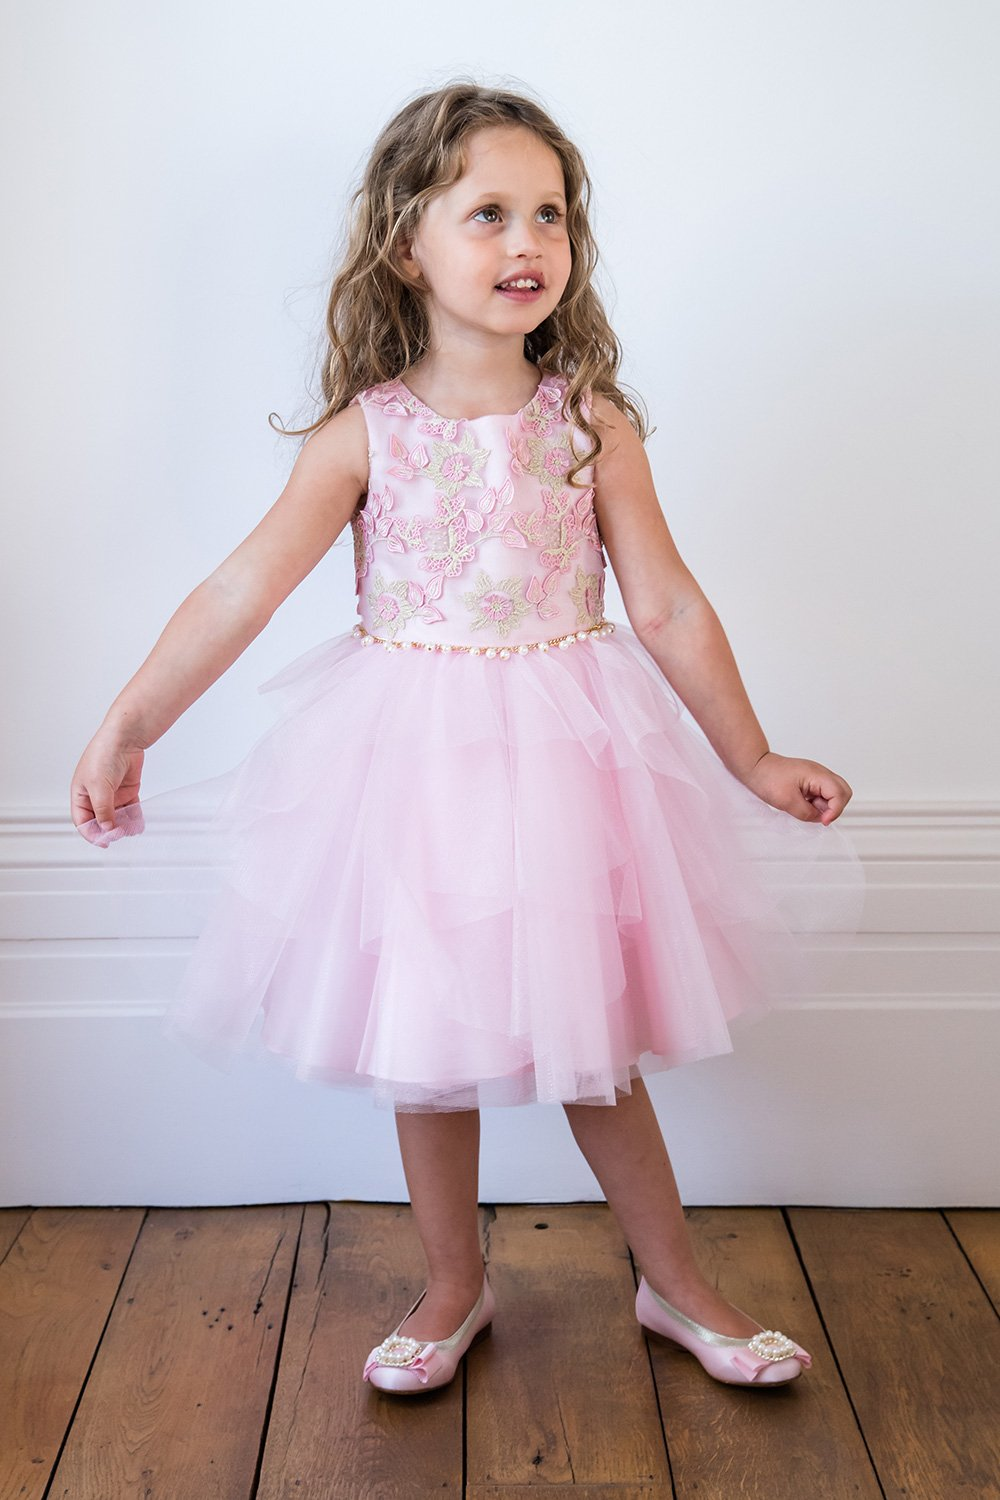 Süßigkeits-Rosa-Schmetterlings-Ballkleid - David Charles Childrens Wear